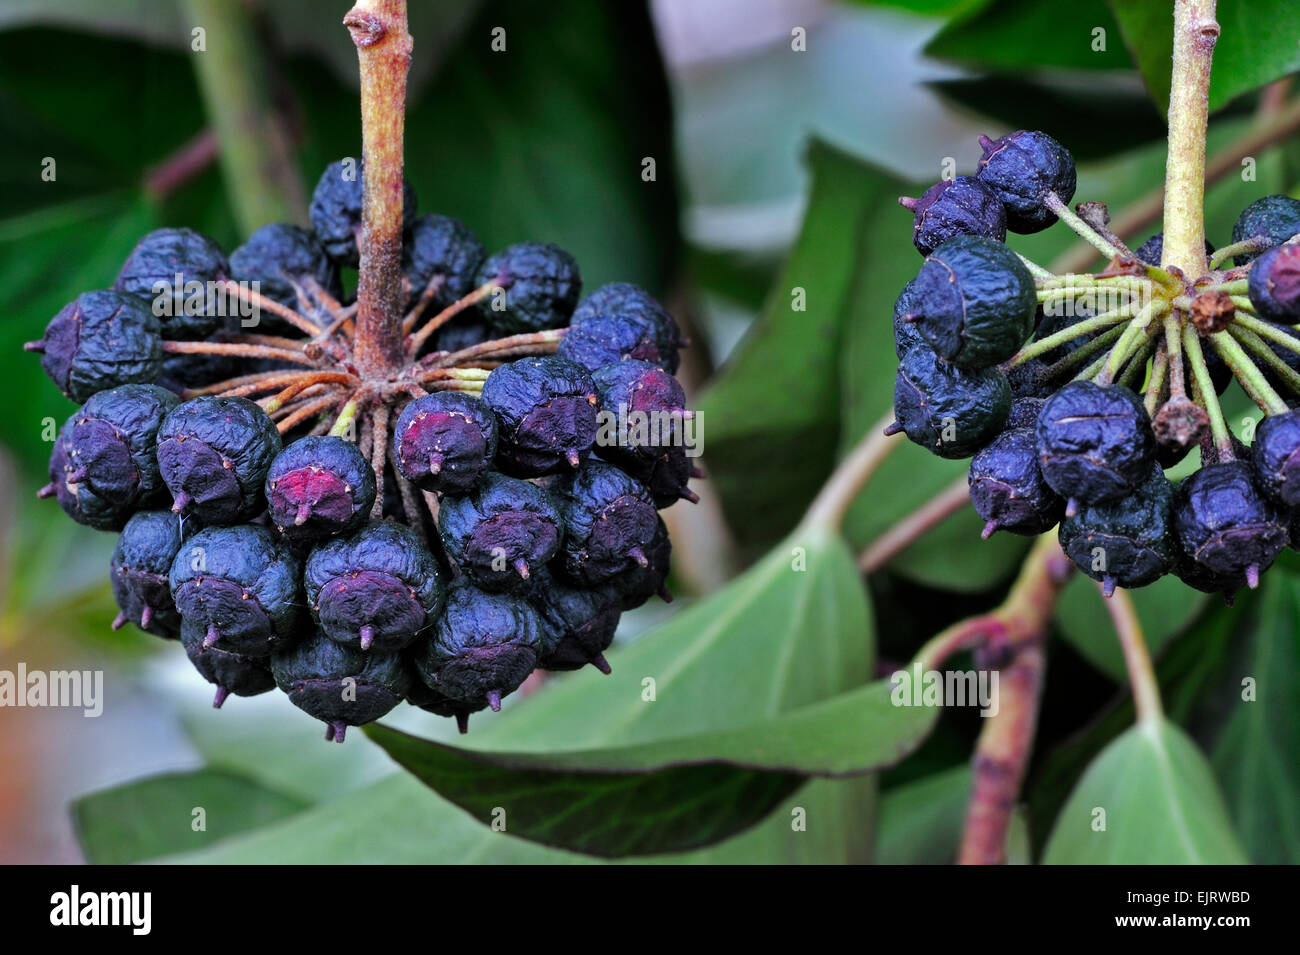 Common ivy (Hedera helix) close up of berries Stock Photo